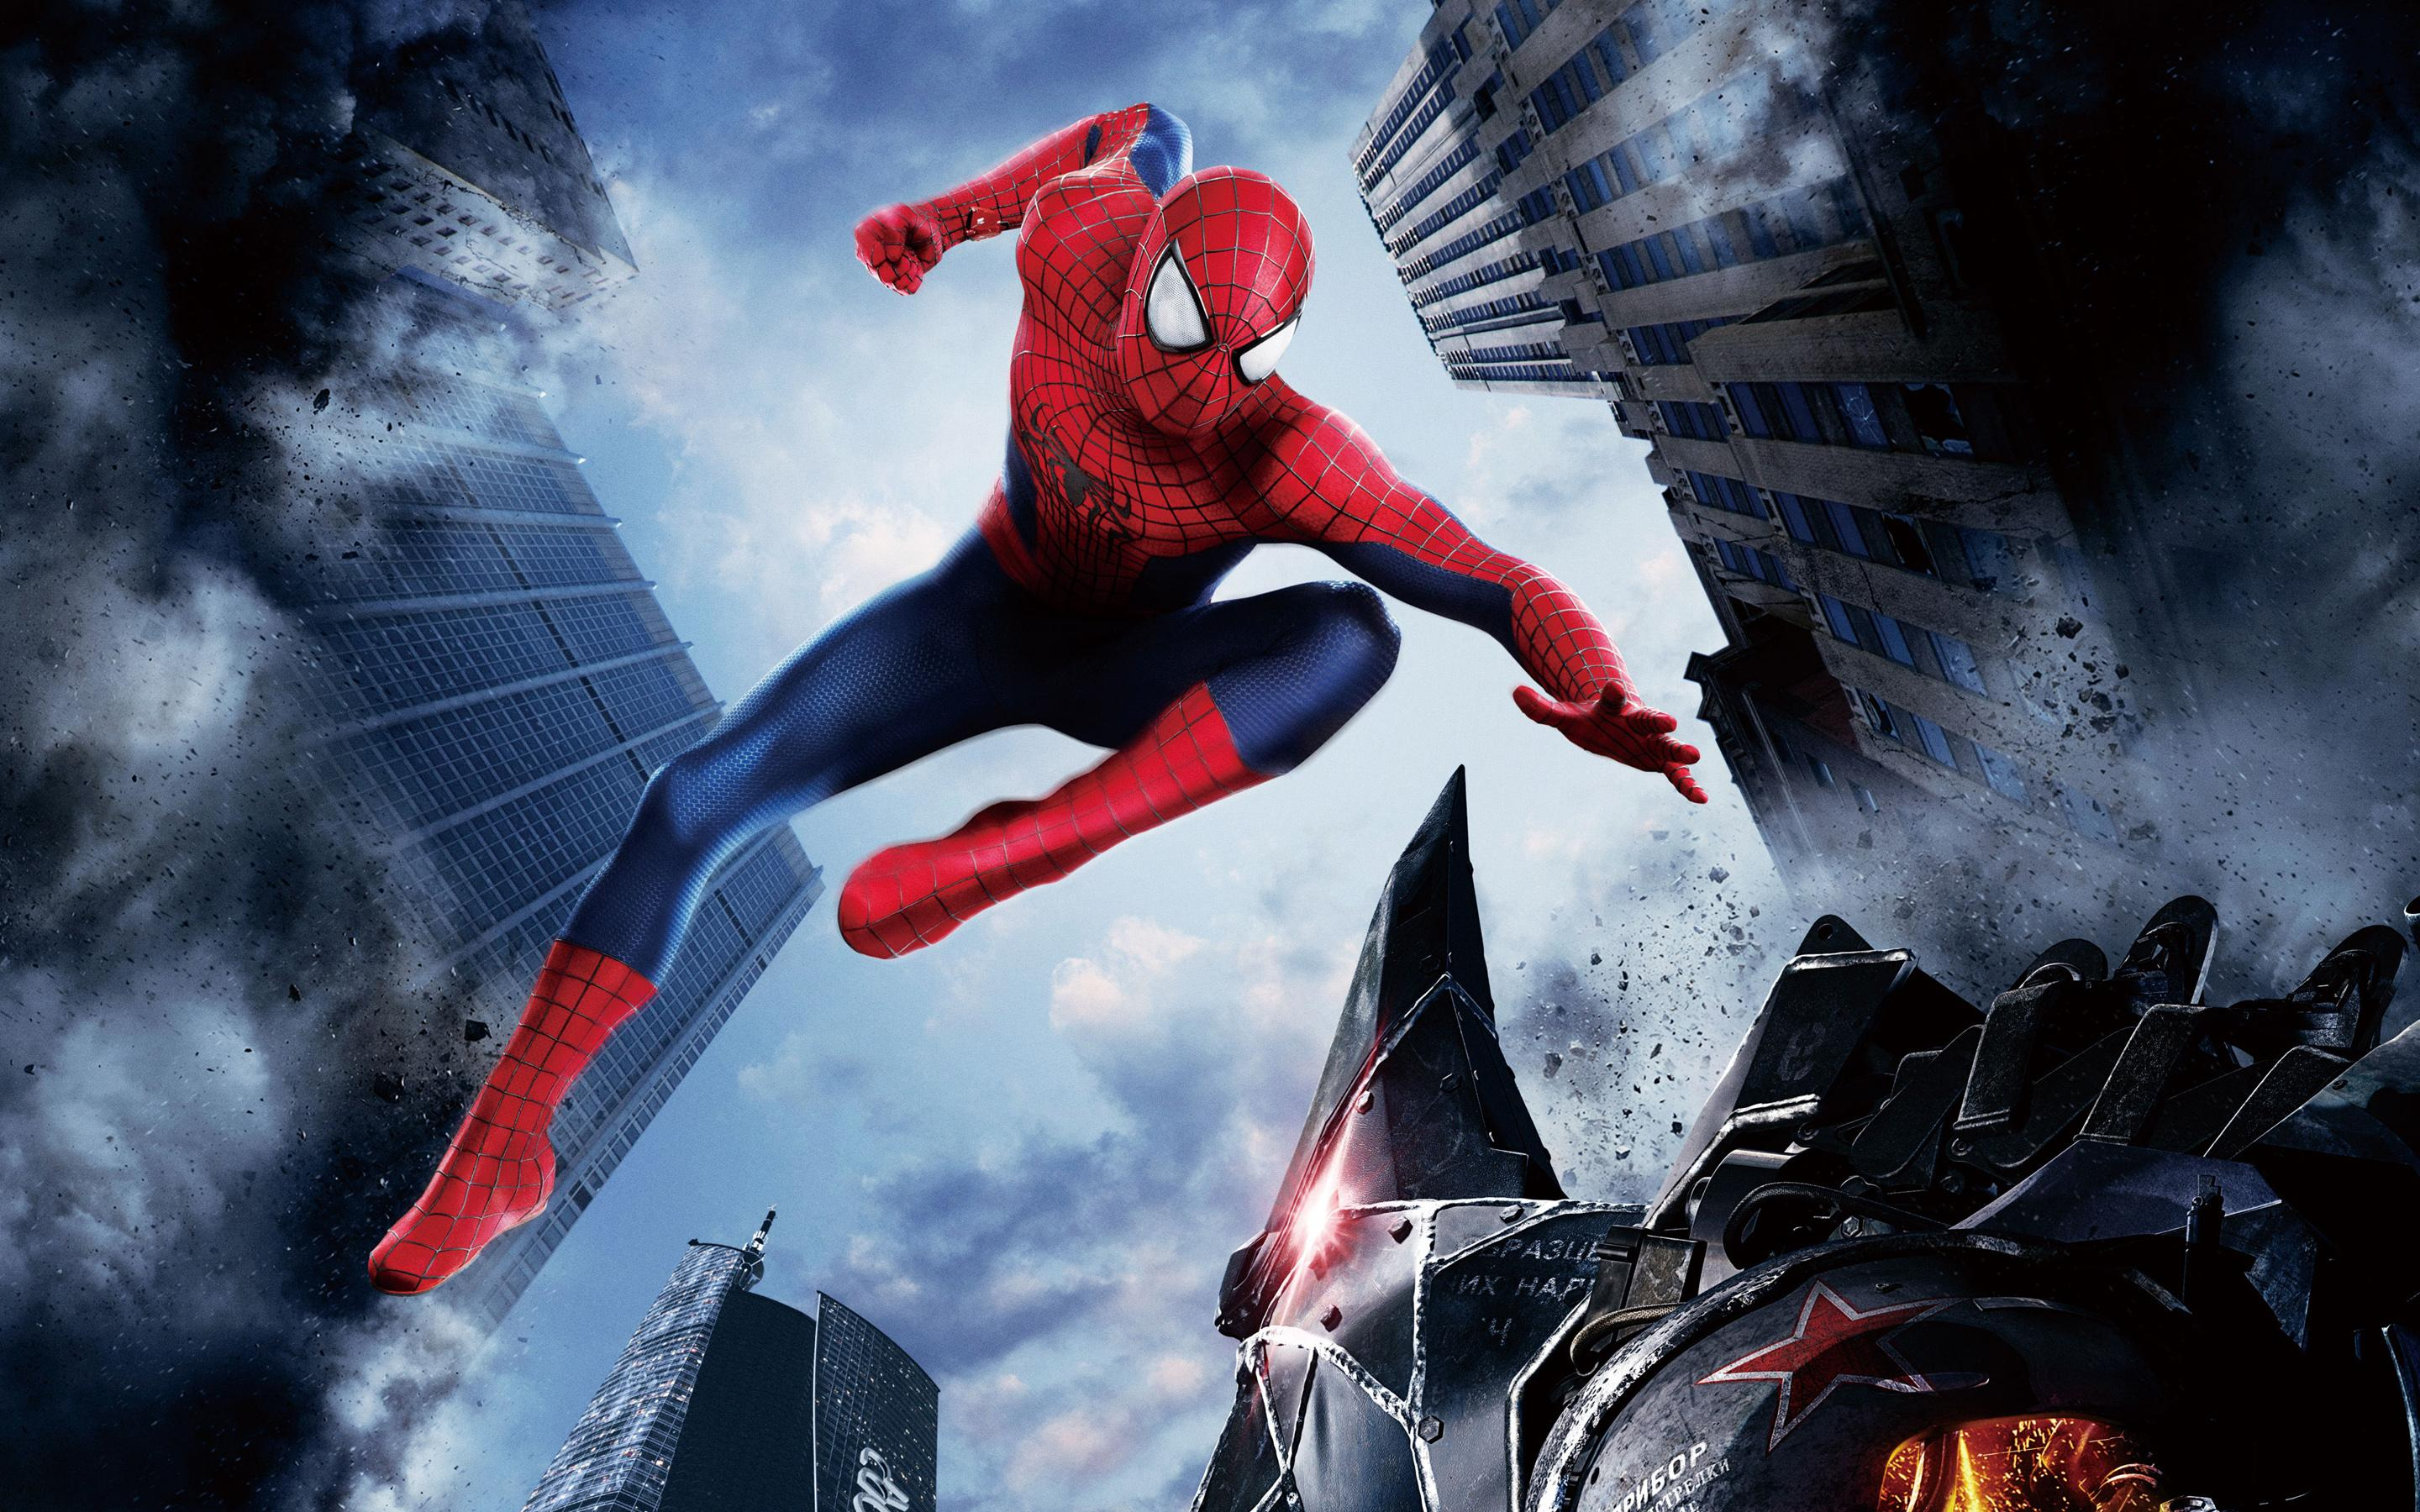 HD 3D Wallpapers Download HD The Amazing Spider Man 2 2014 2880x1800